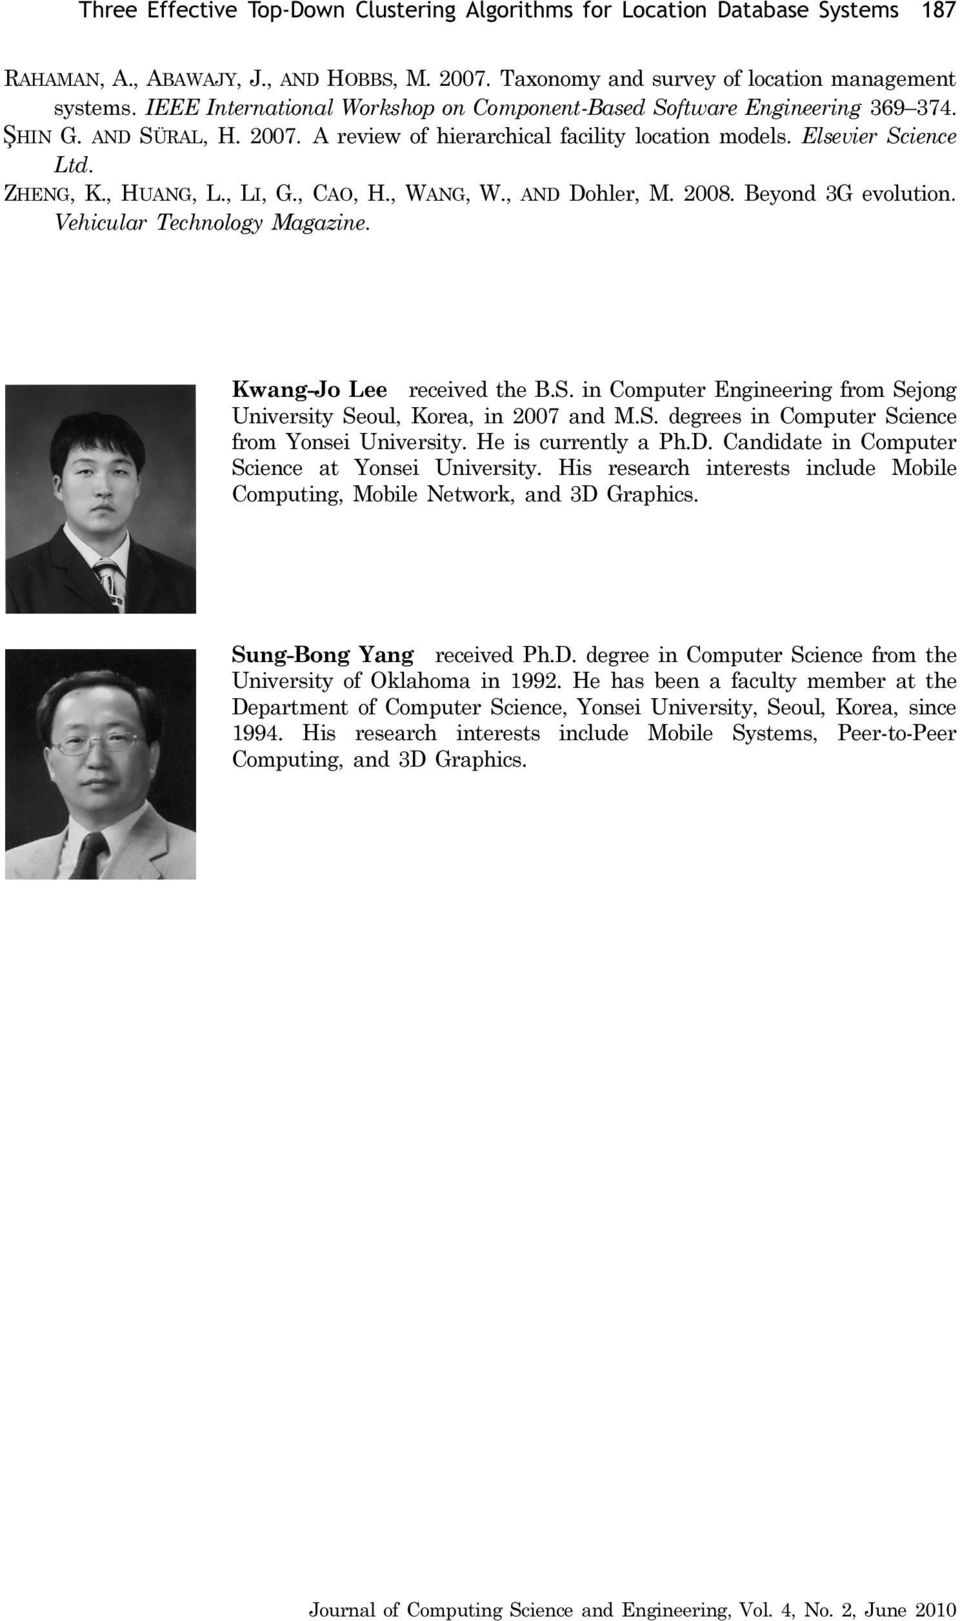 , LI, G., CAO, H., WANG, W., AND Dohler, M. 2008. Beyond 3G evolution. Vehicular Technology Magazine. Kwang-Jo Lee received the B.S.